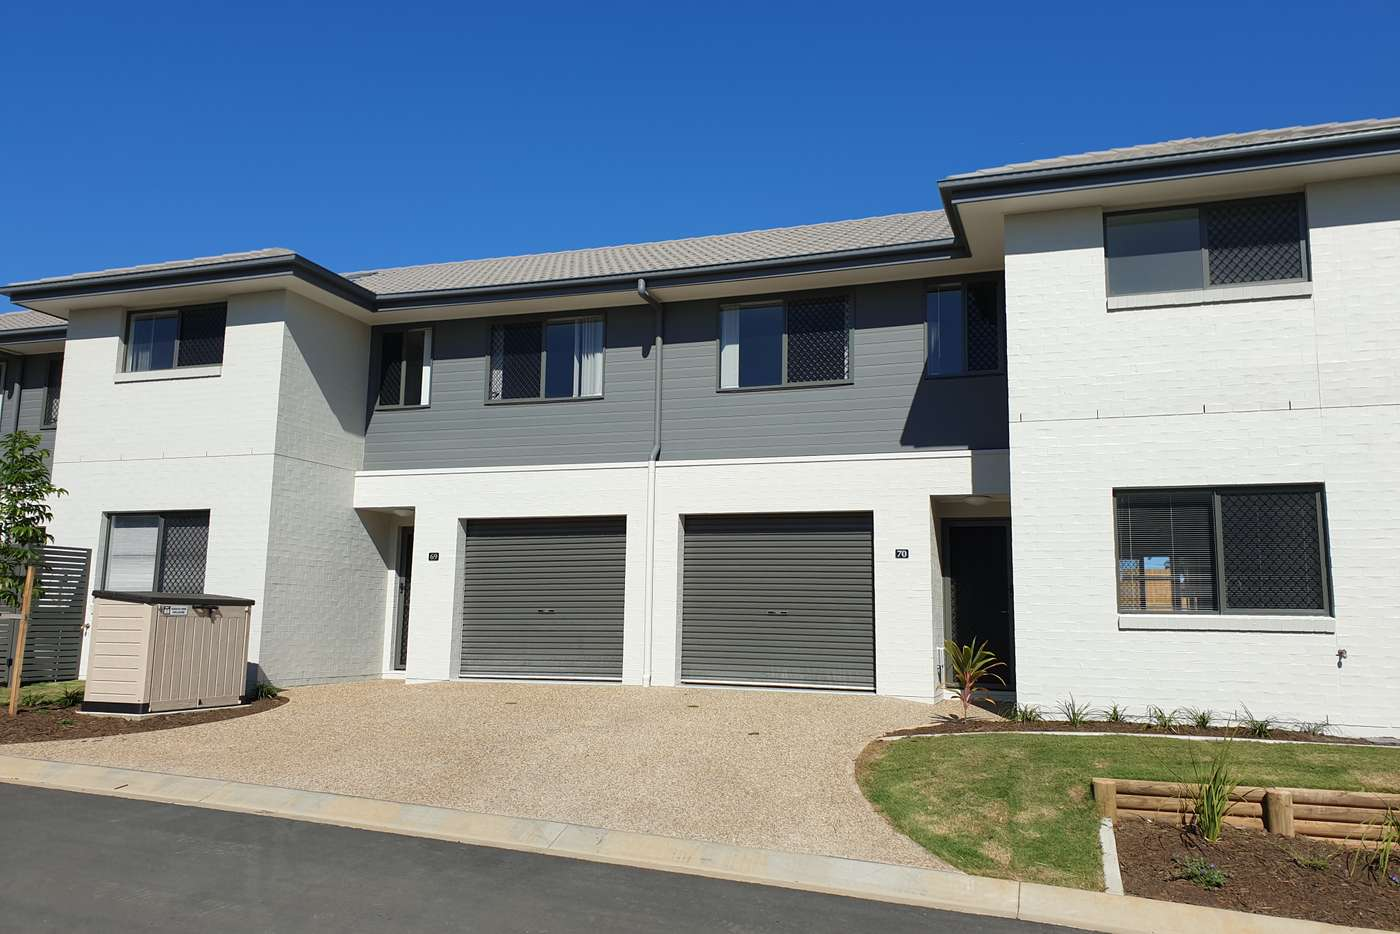 Main view of Homely townhouse listing, 2 Kerr Rd West, Kallangur QLD 4503